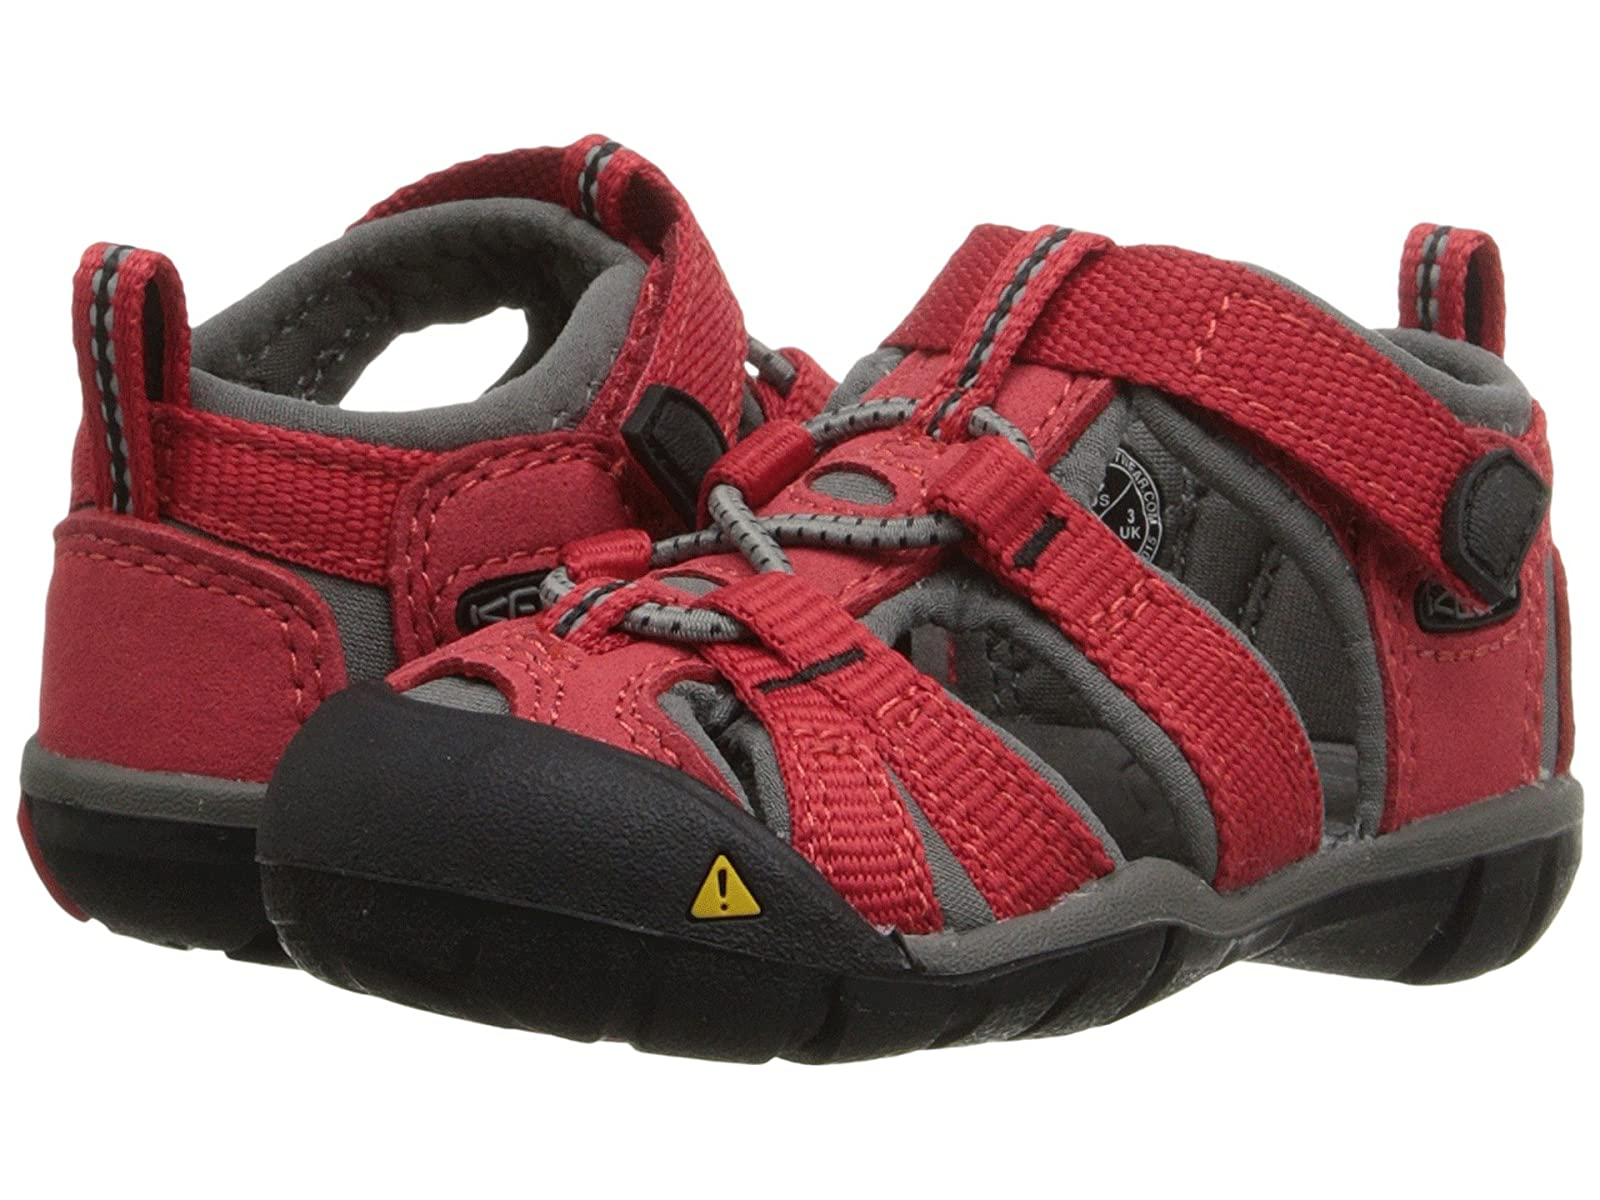 Keen Kids Seacamp II CNX (Toddler)Atmospheric grades have affordable shoes